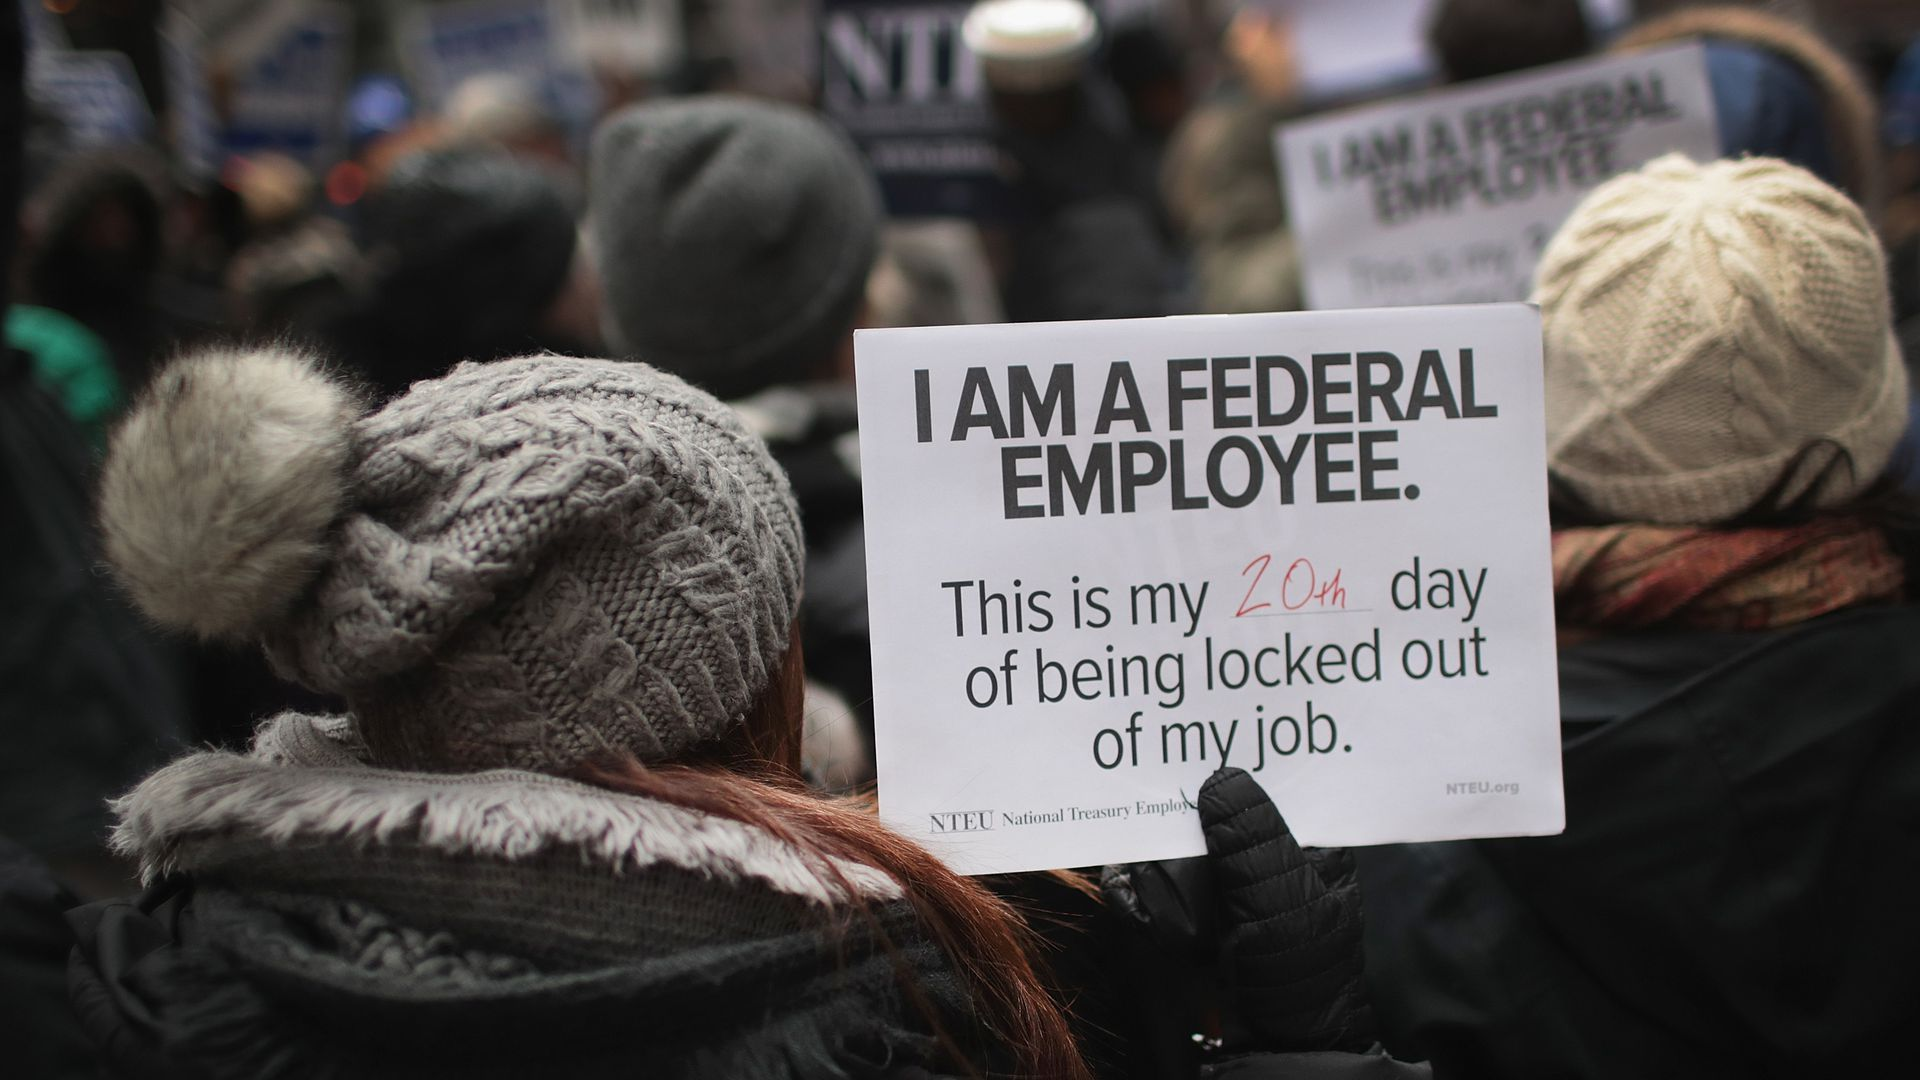 I am a federal employee, this is my 20th day of being locked out of my job sign.